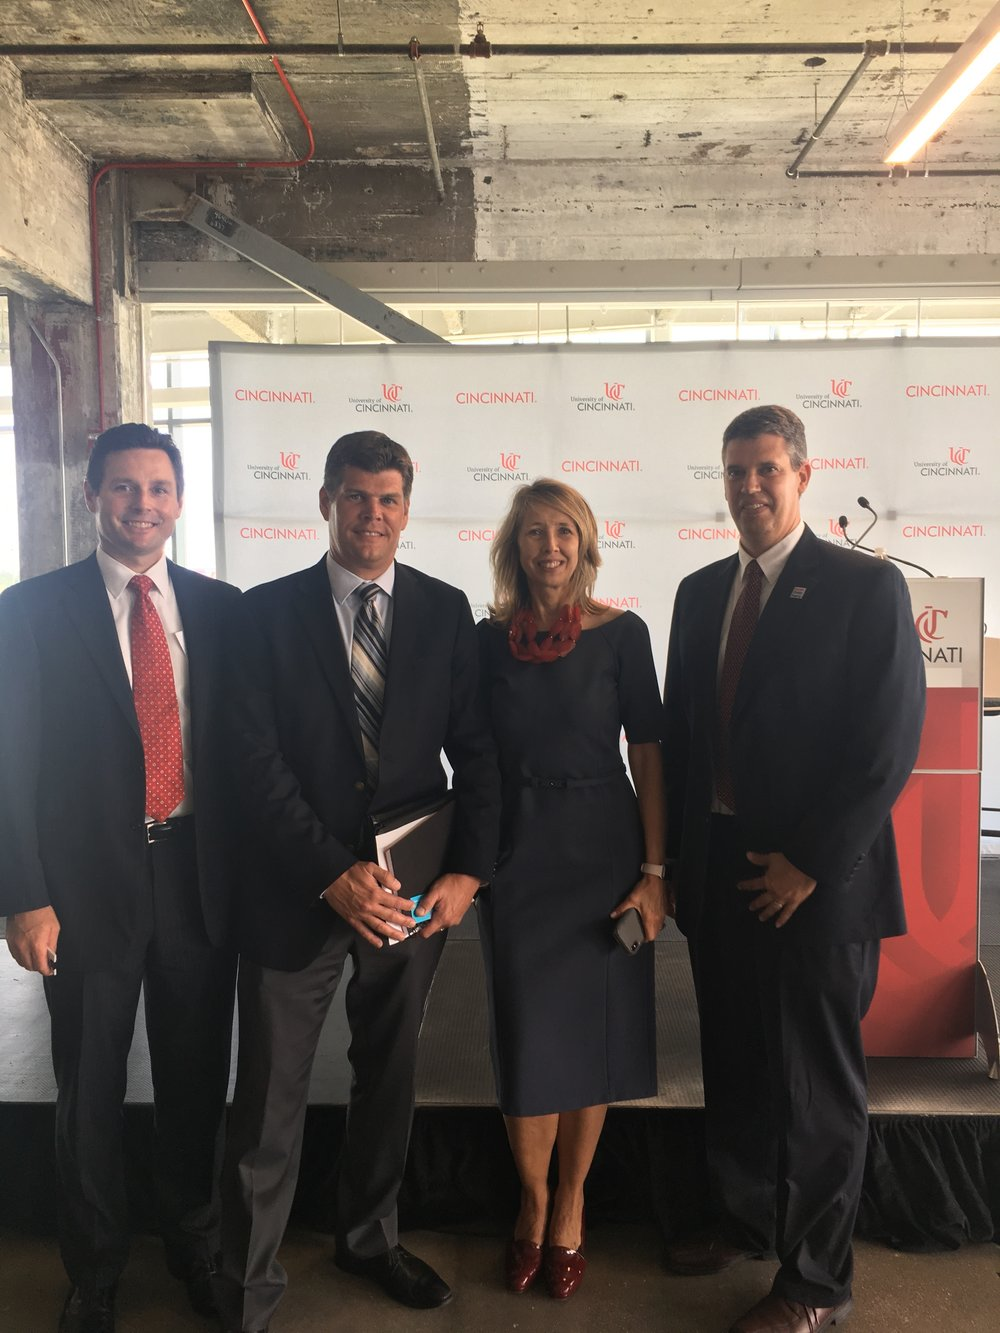 Uptown Consortium, Inc. President & CEO Beth Robinson with Terrex Development & Construction at UC's digital futures announcement.